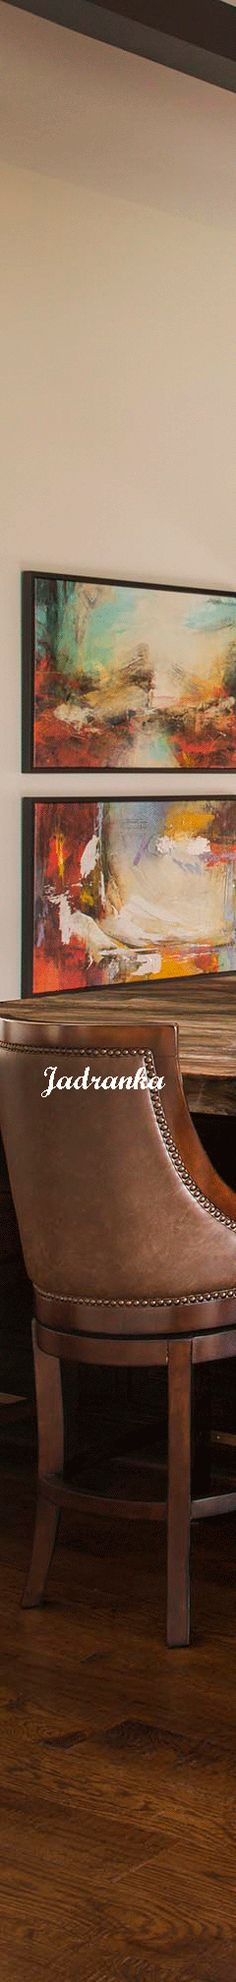 1/7 #design #home #Jadranka